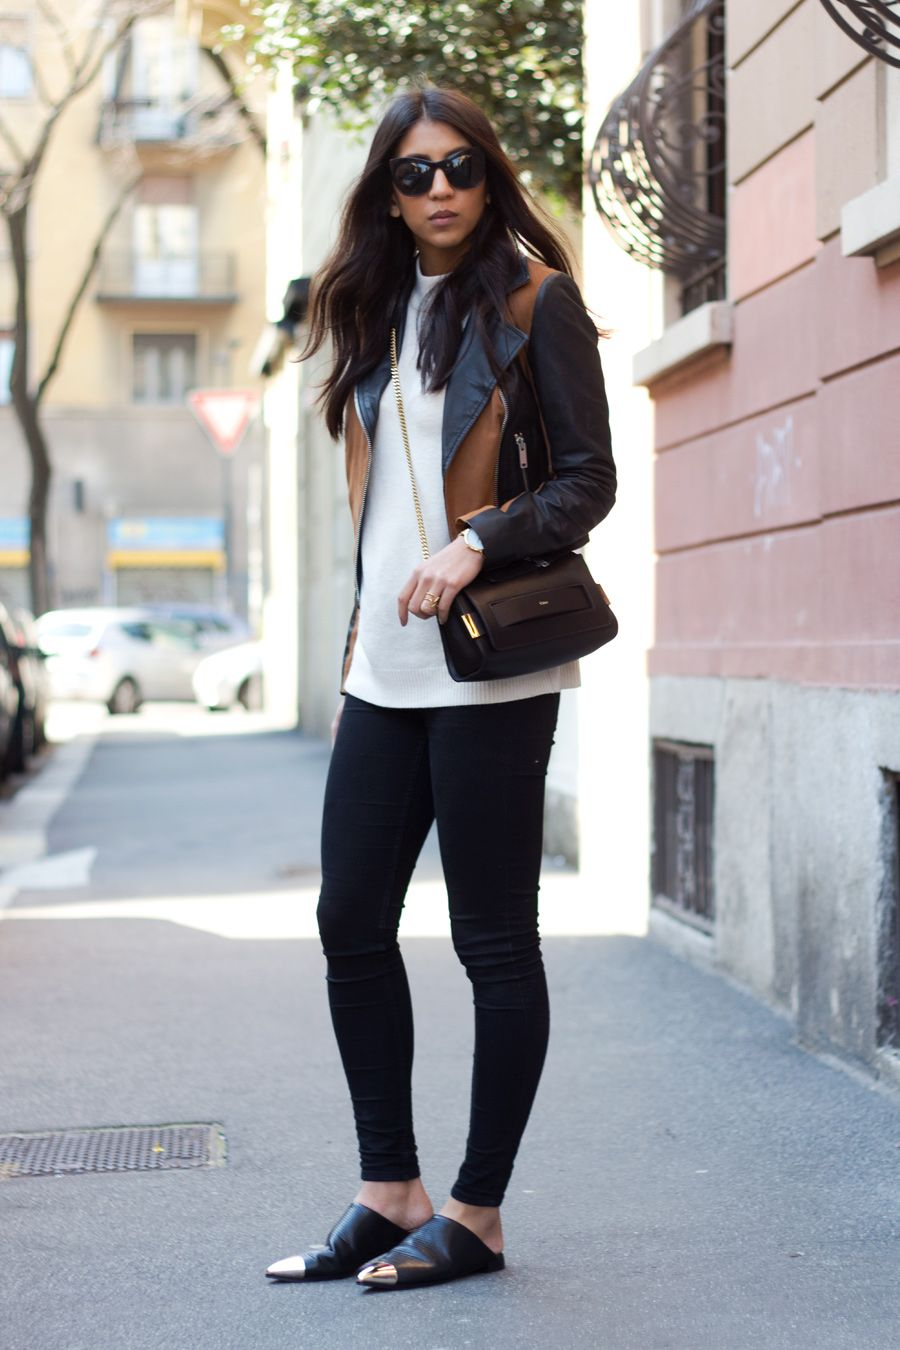 Not Your Standard Berlin Fashion and Lifestyle Blog Part 2